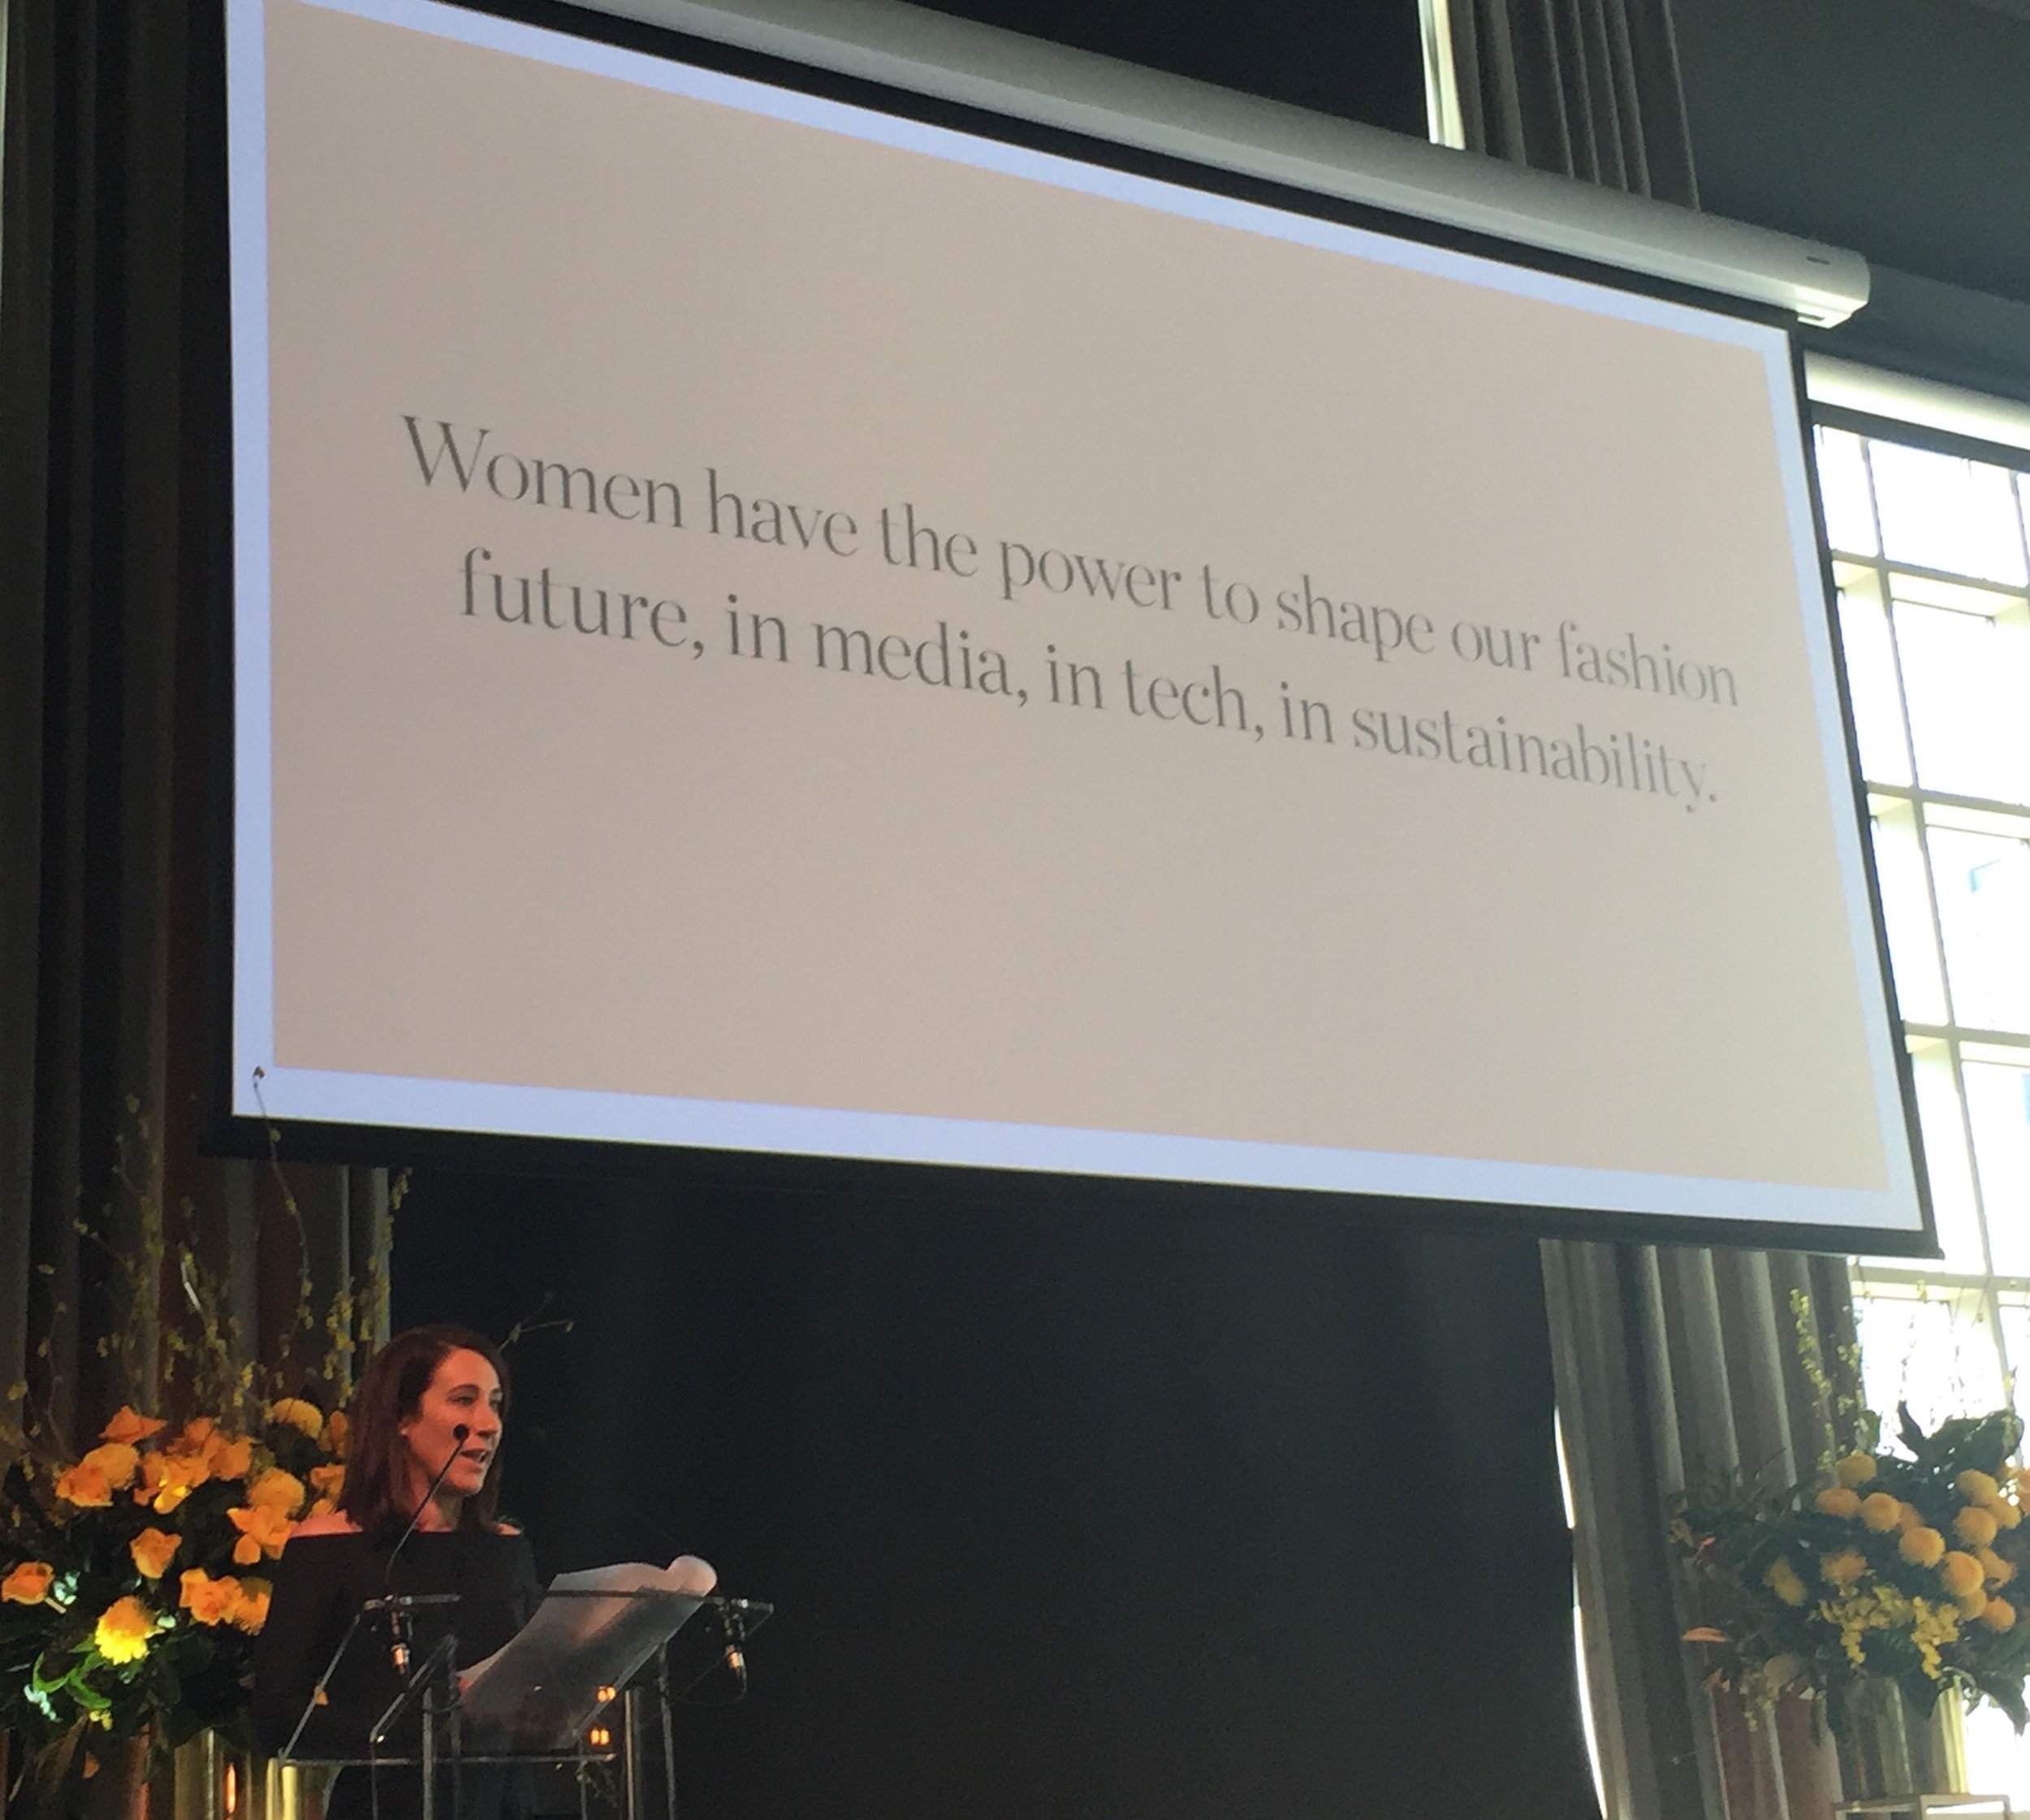 Edwina McCann, editor-in-chief of  Vogue  Australia, speaking at the 2018 Melbourne Fashion Week Fashion Forum